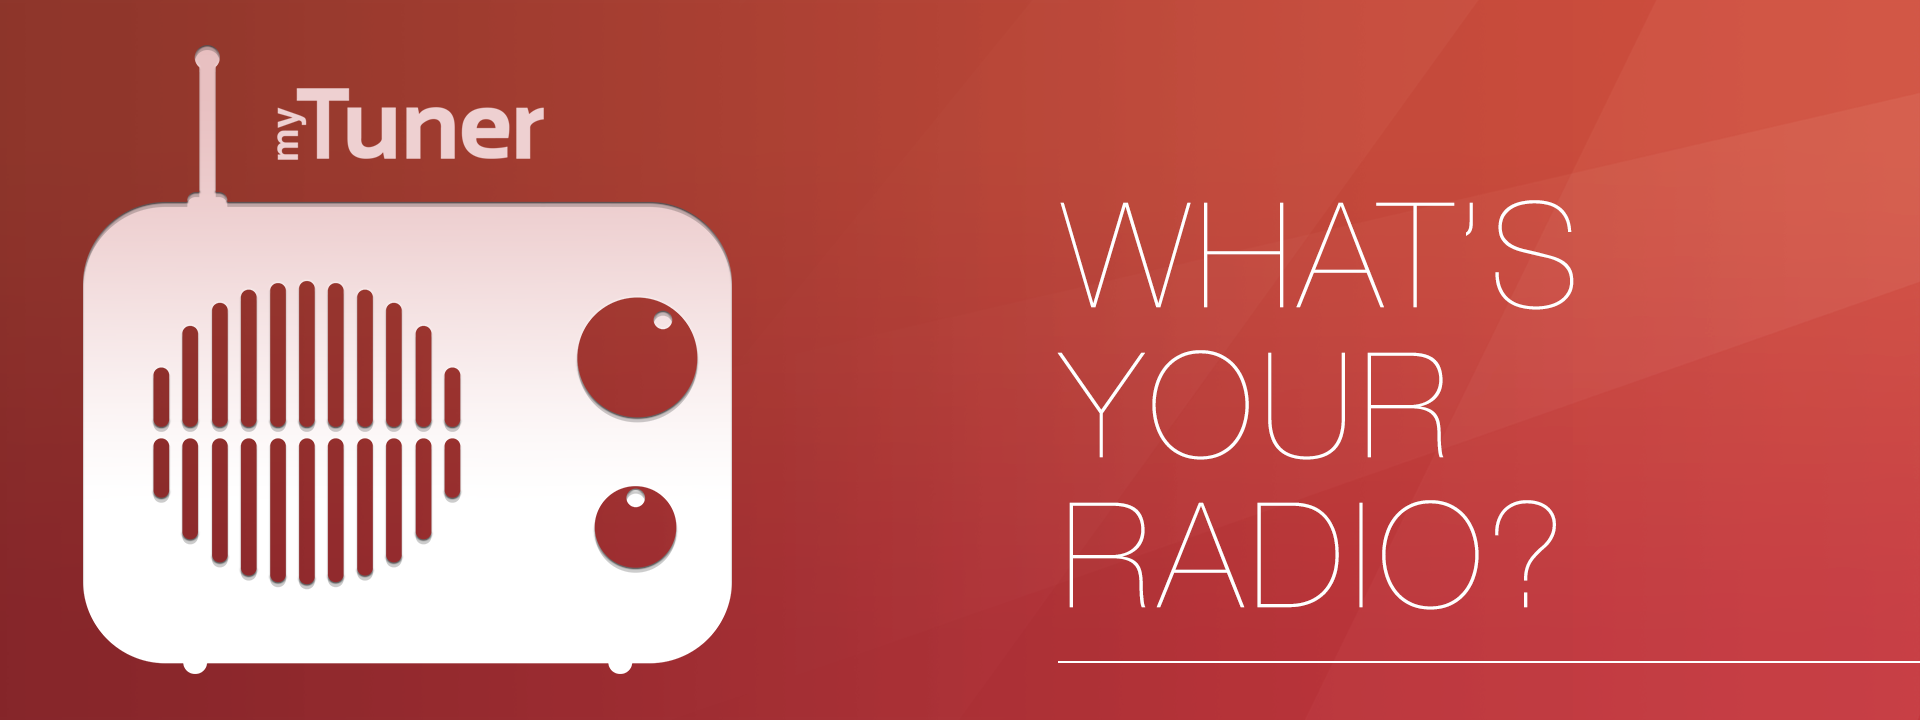 myTuner Radio Premium Version Giveaway